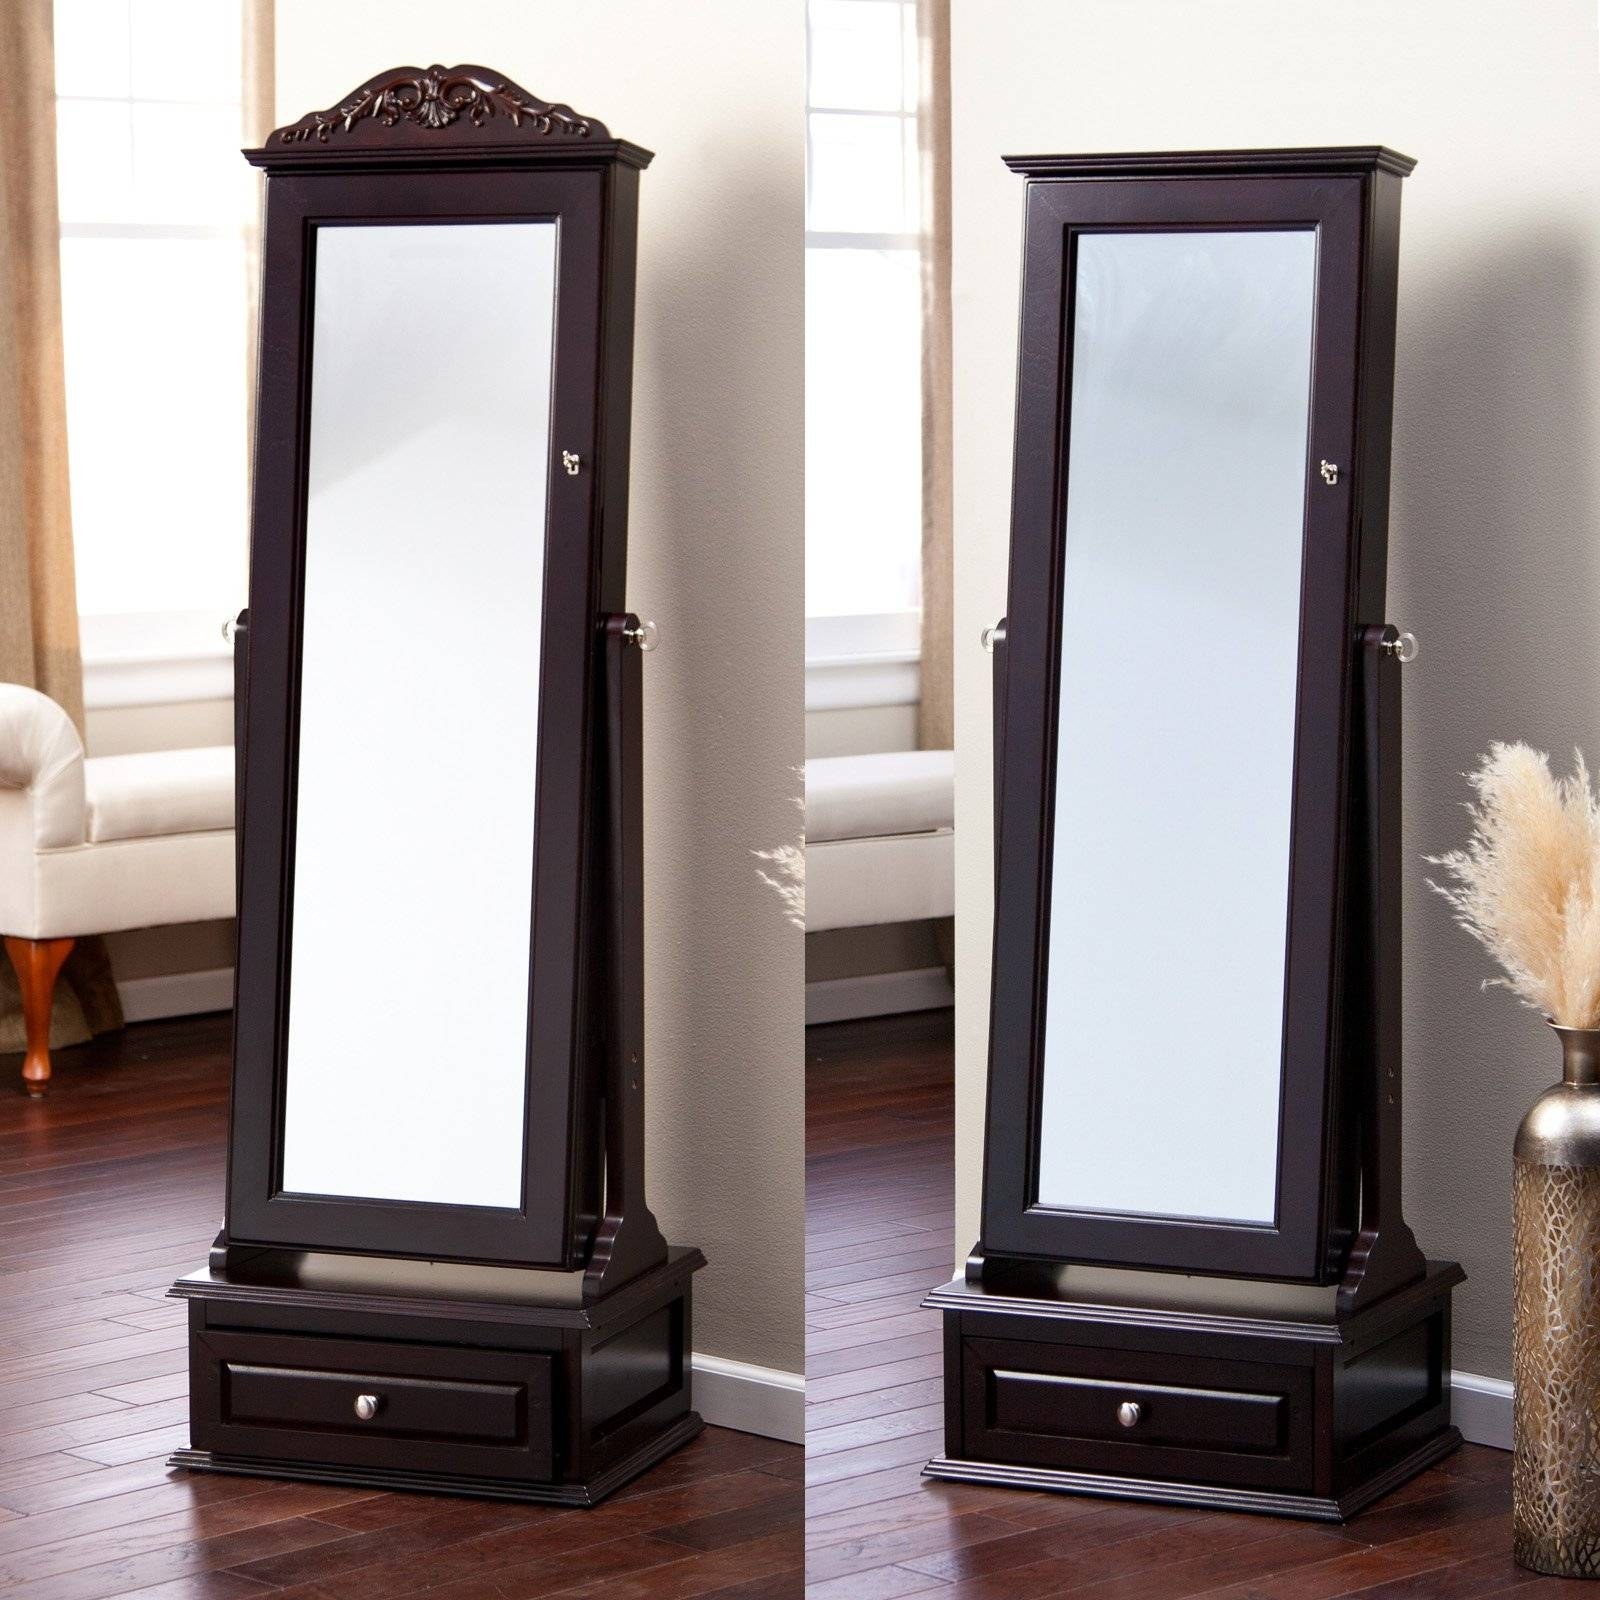 Furniture: Cheval Mirror | Standing Jewelry Mirror | Standing Mirrors intended for Black Free Standing Mirrors (Image 8 of 15)